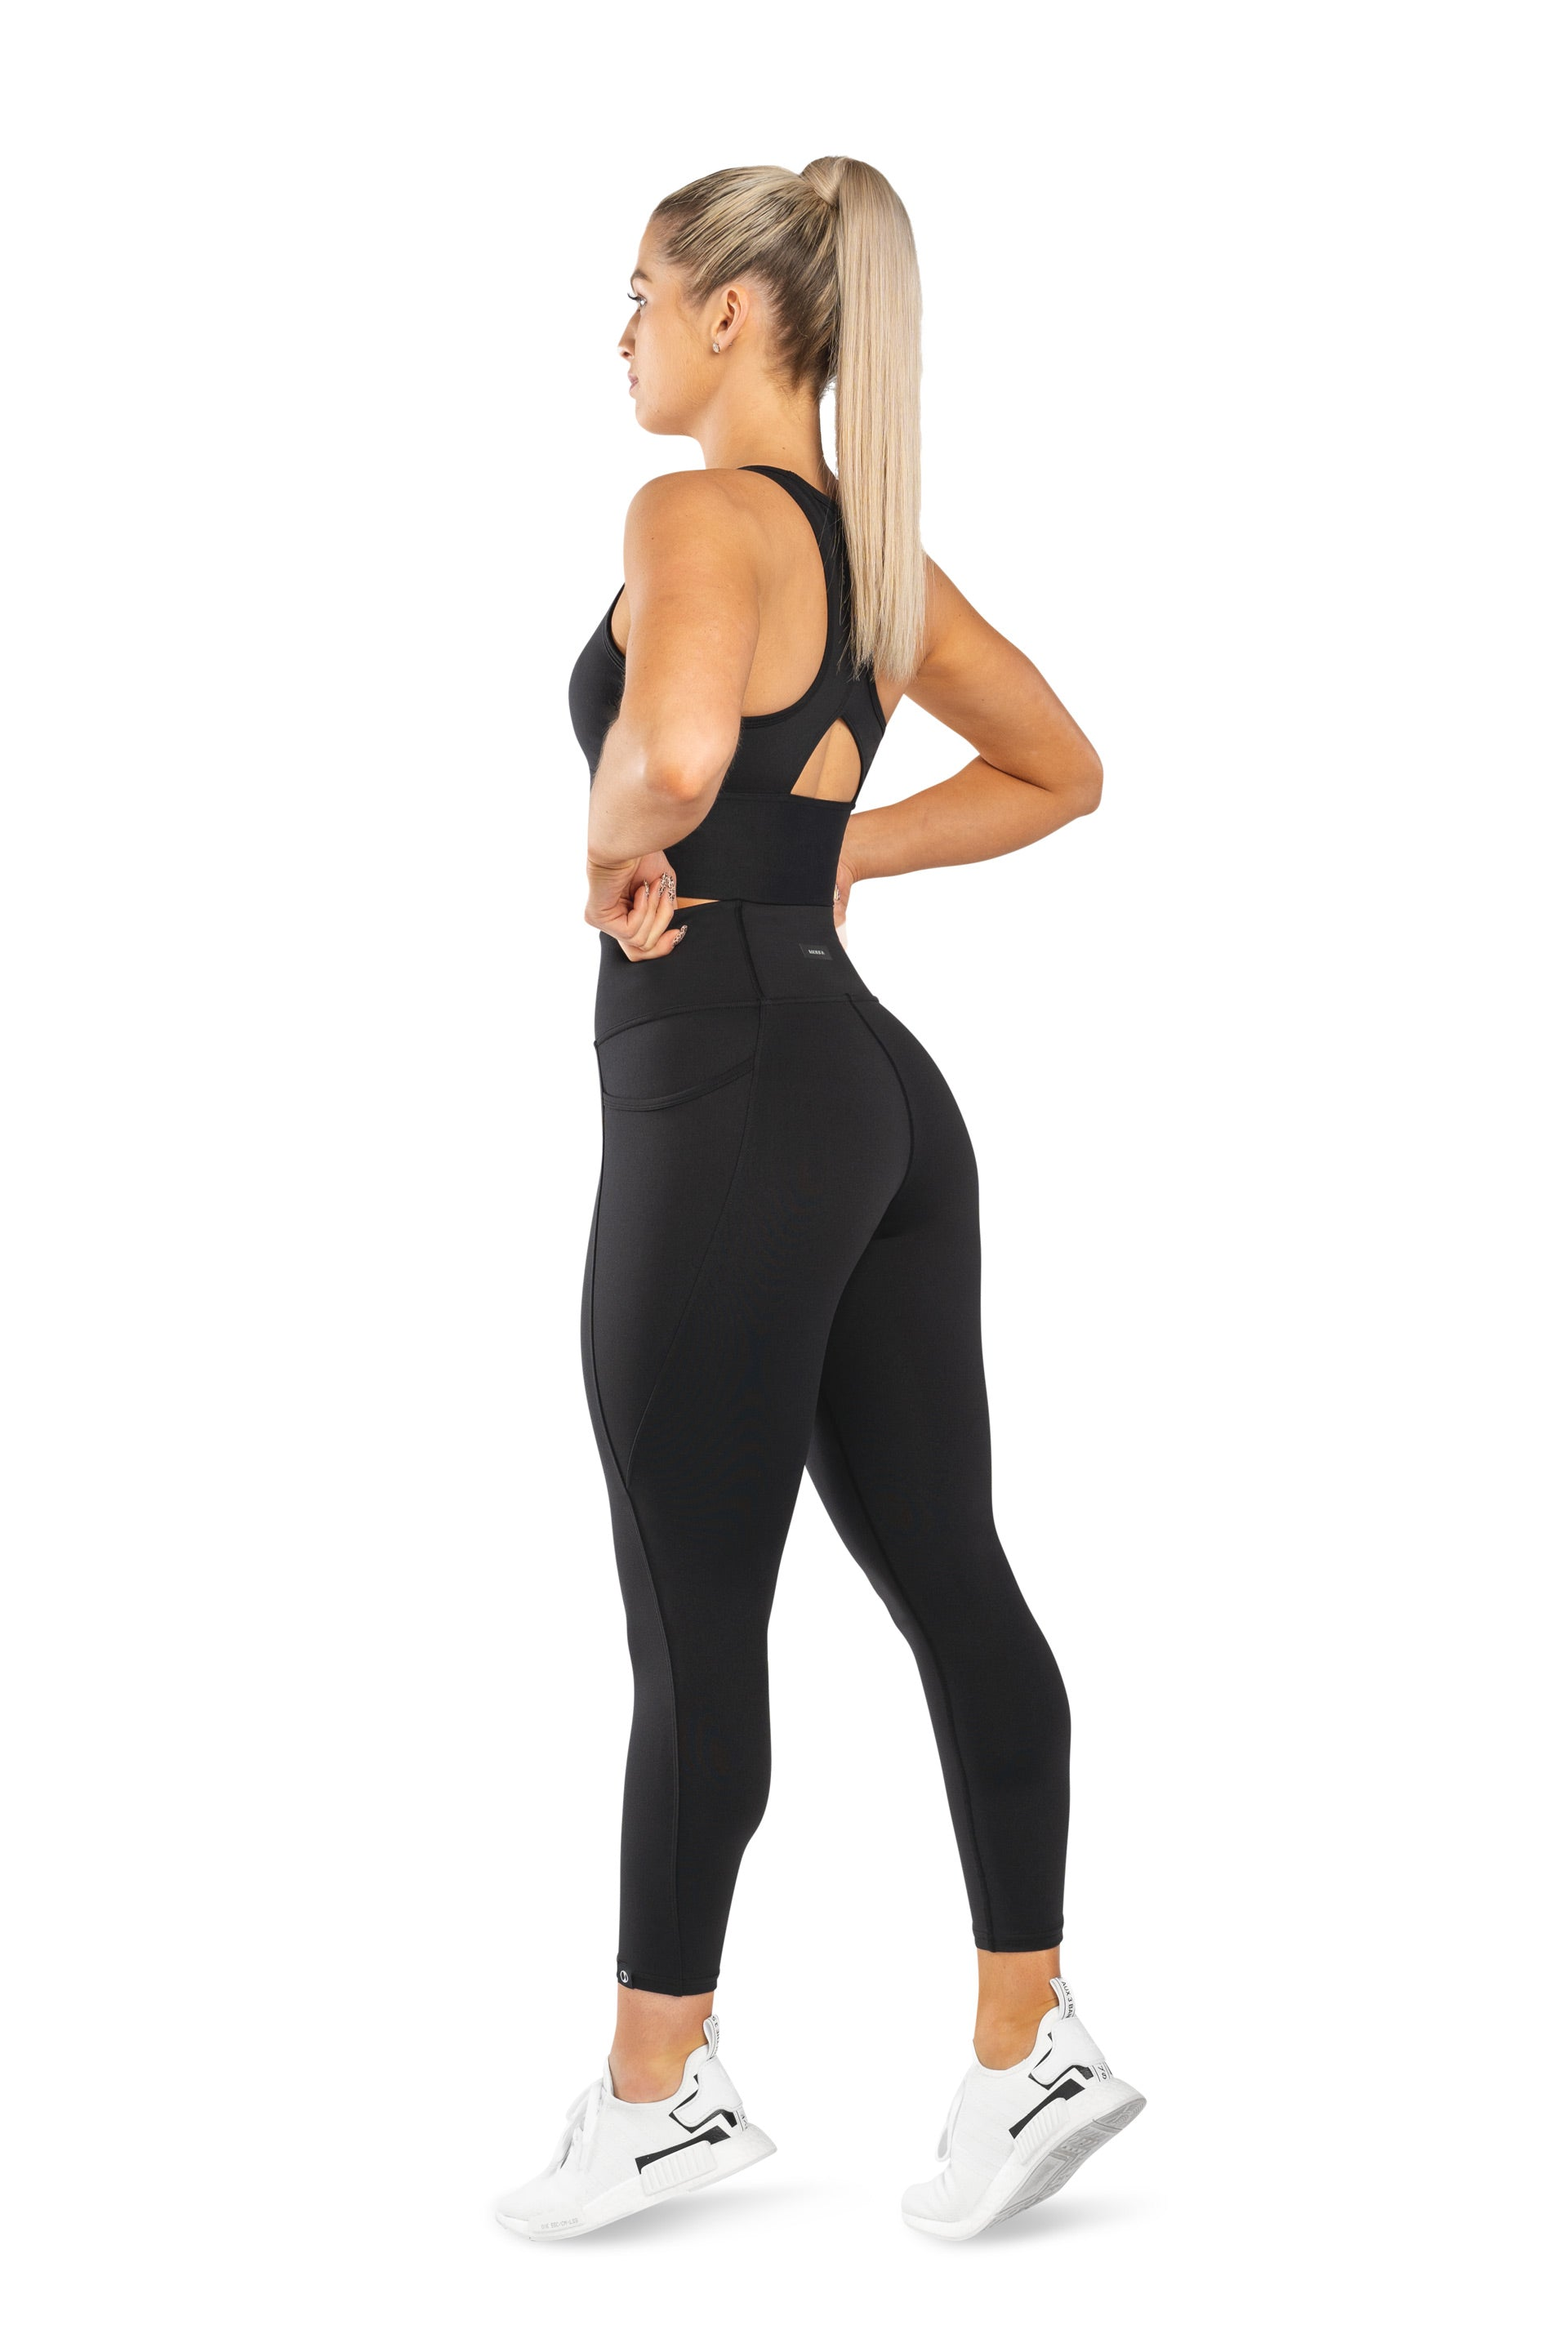 HIGH WAISTED SIDE POCKET 7/8 TIGHT - BLACK